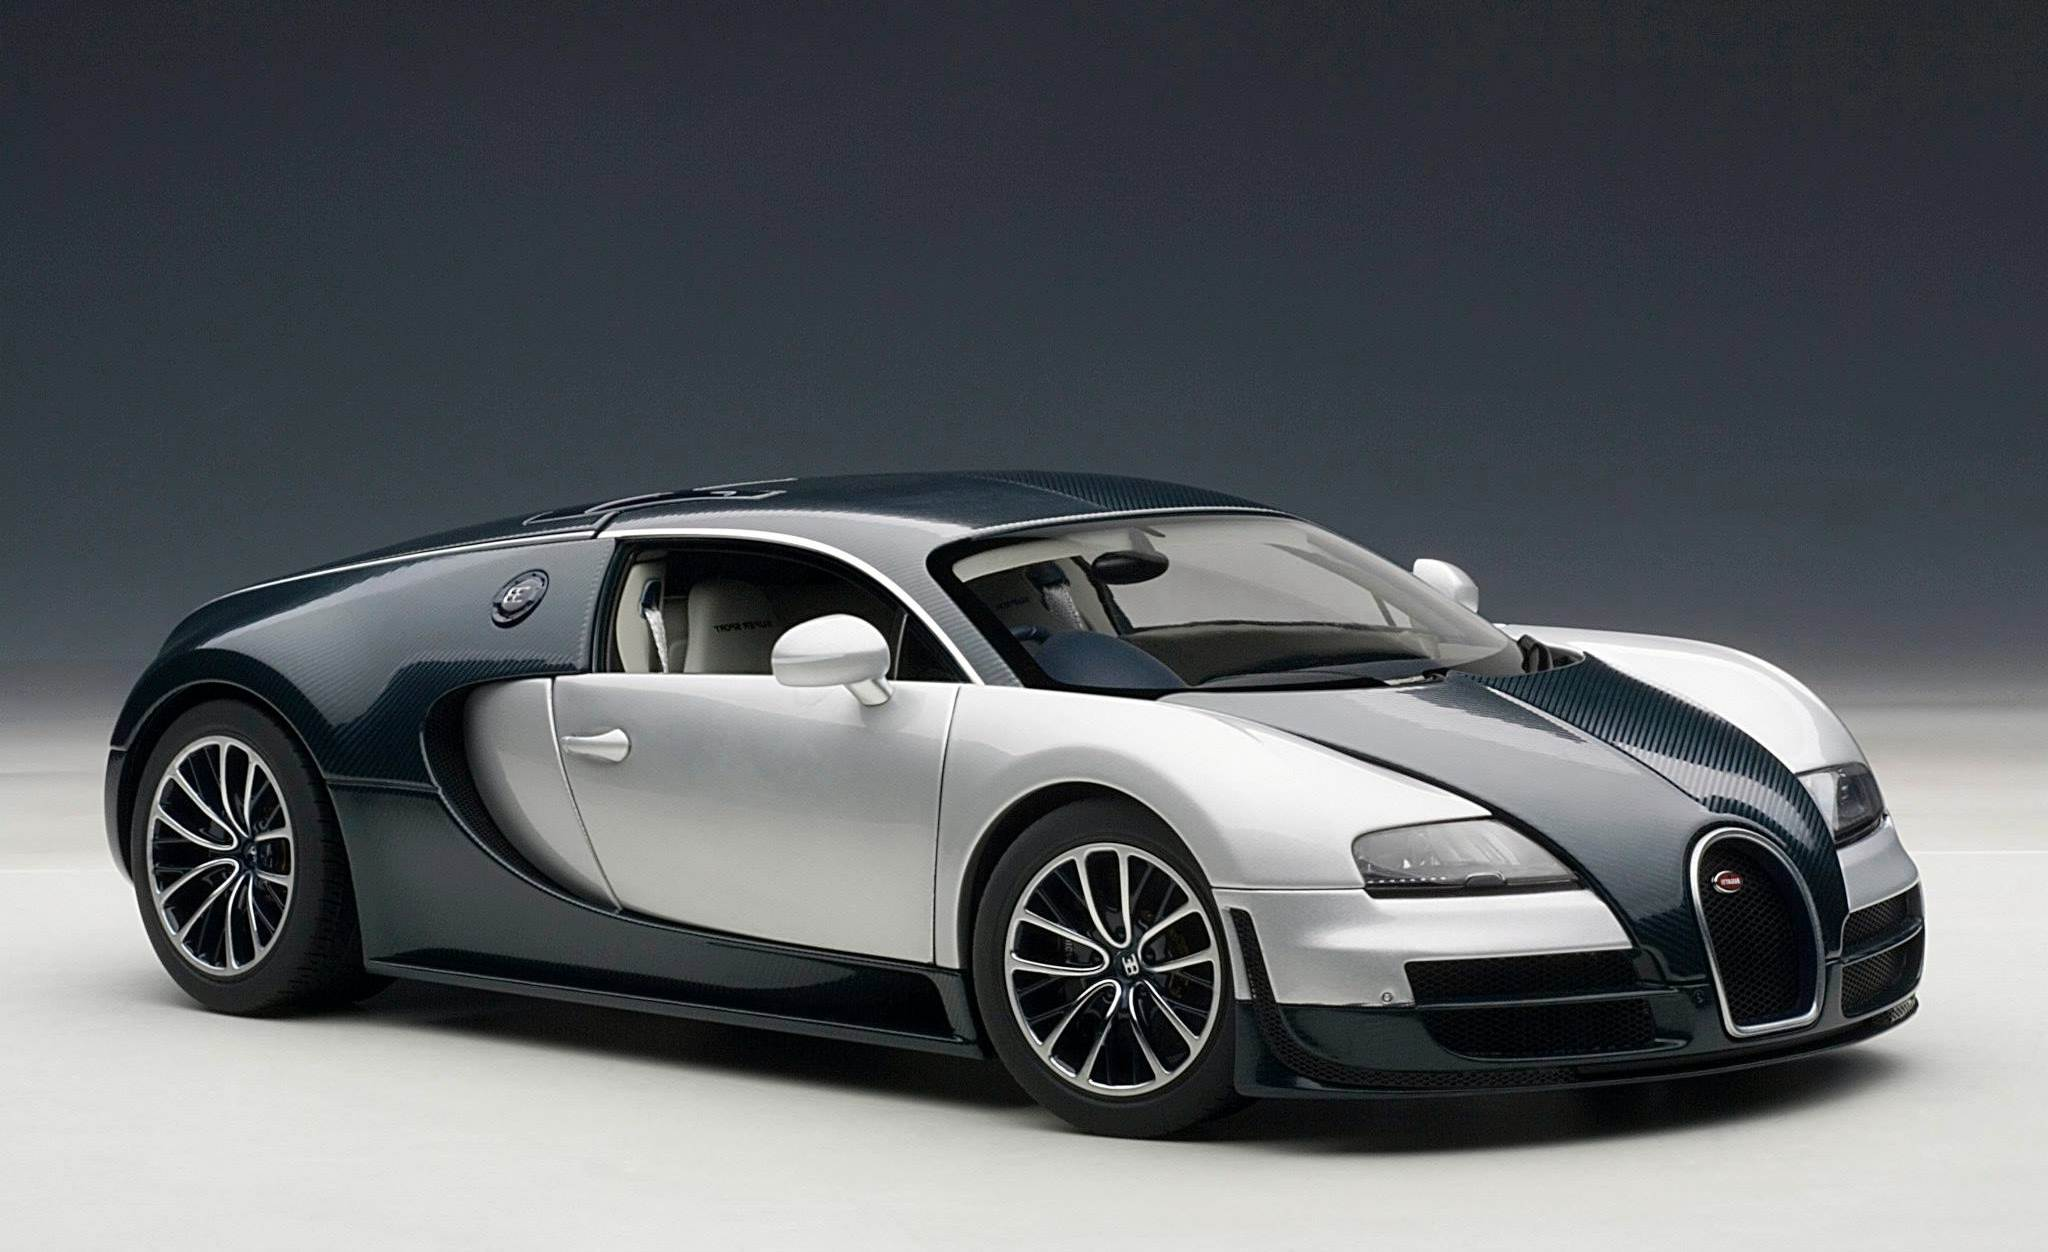 White And Black Bugatti Veyron Wallpaper   image 136 2048x1252